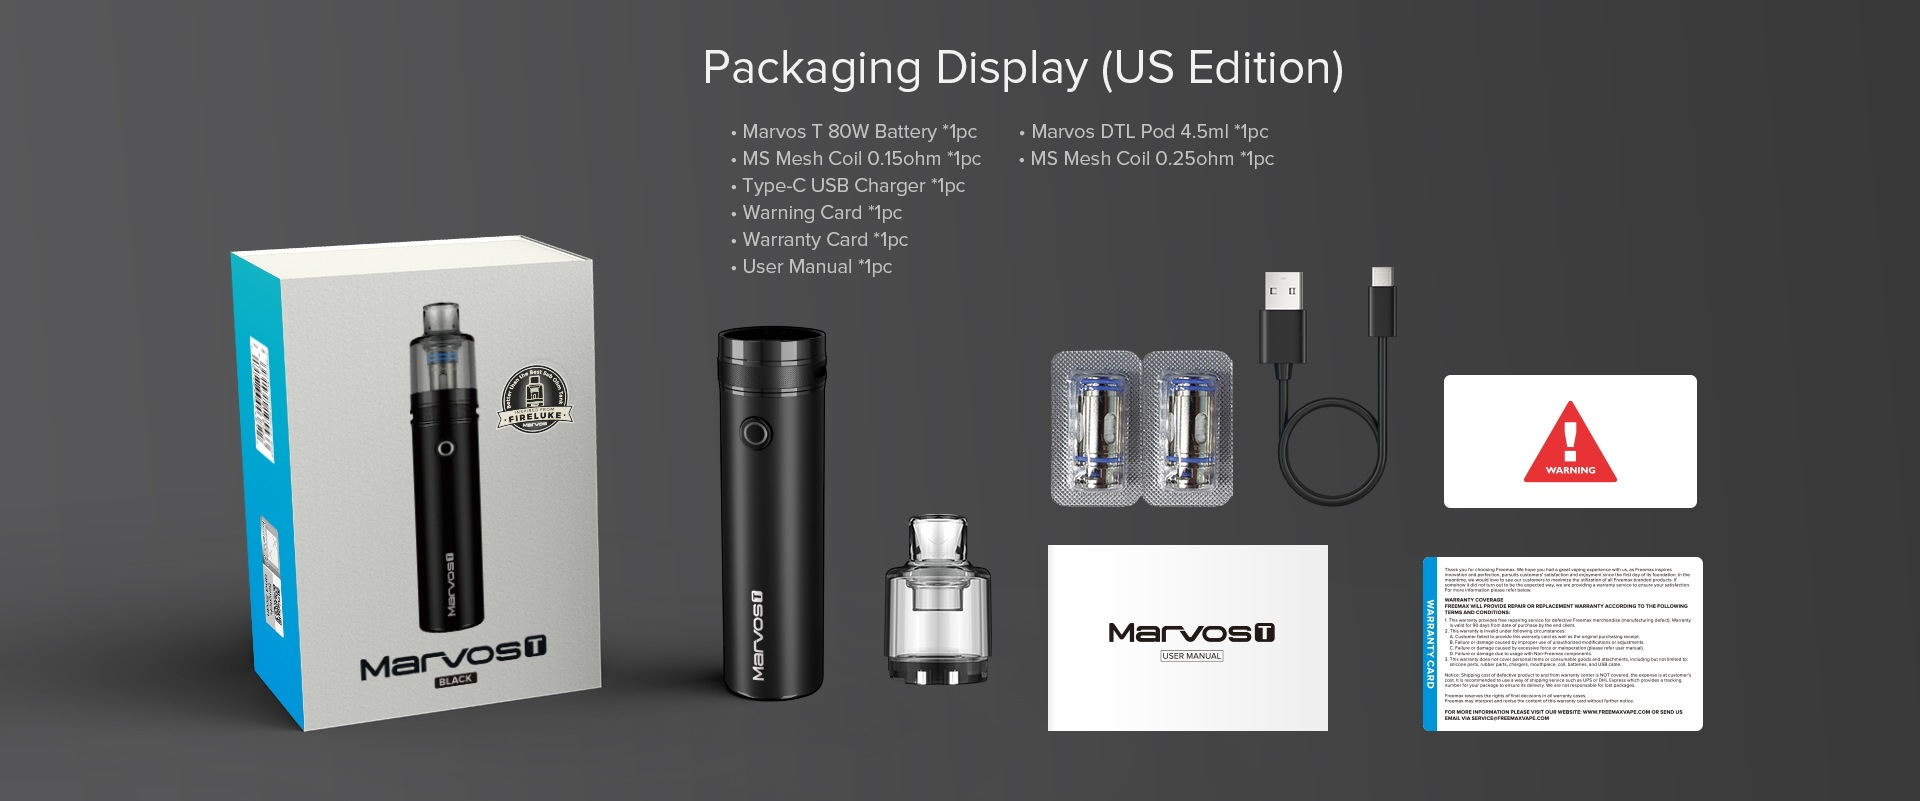 Marvos T 80W Kit - Packaging Display US Edition)